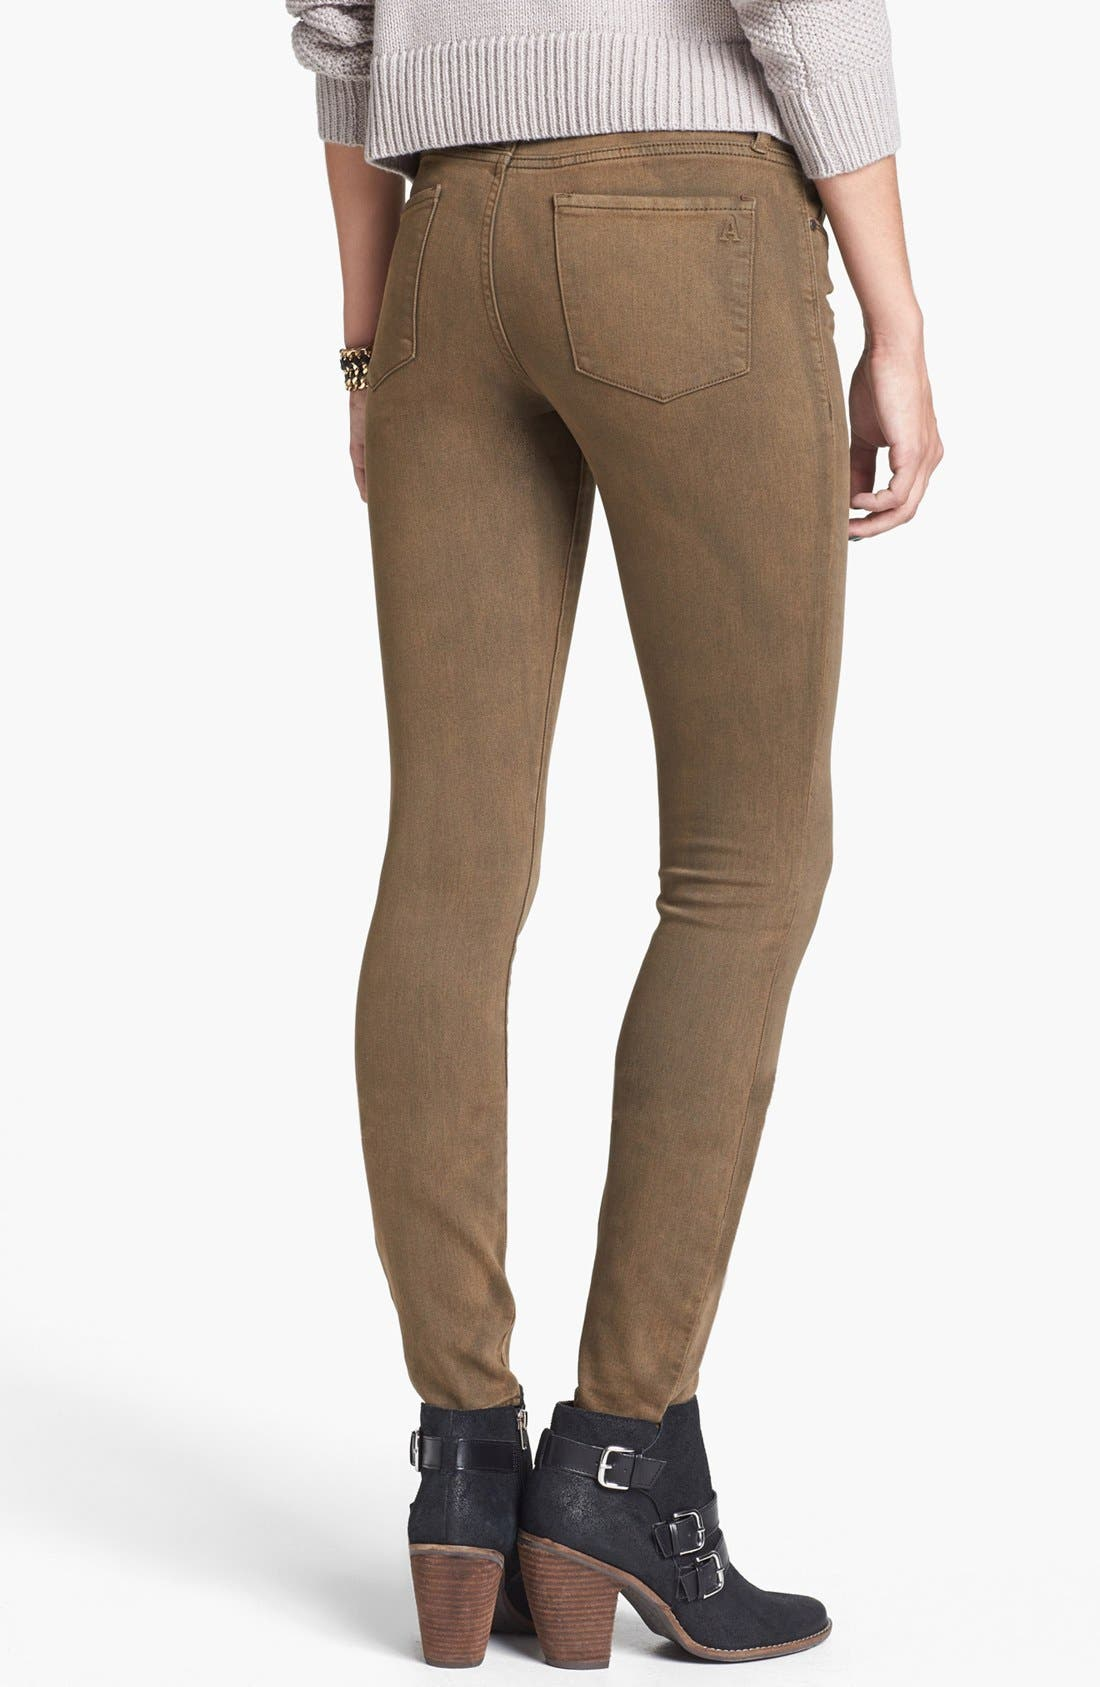 Alternate Image 2  - Articles of Society 'Mya' Overdyed Skinny Jeans (Army) (Juniors)